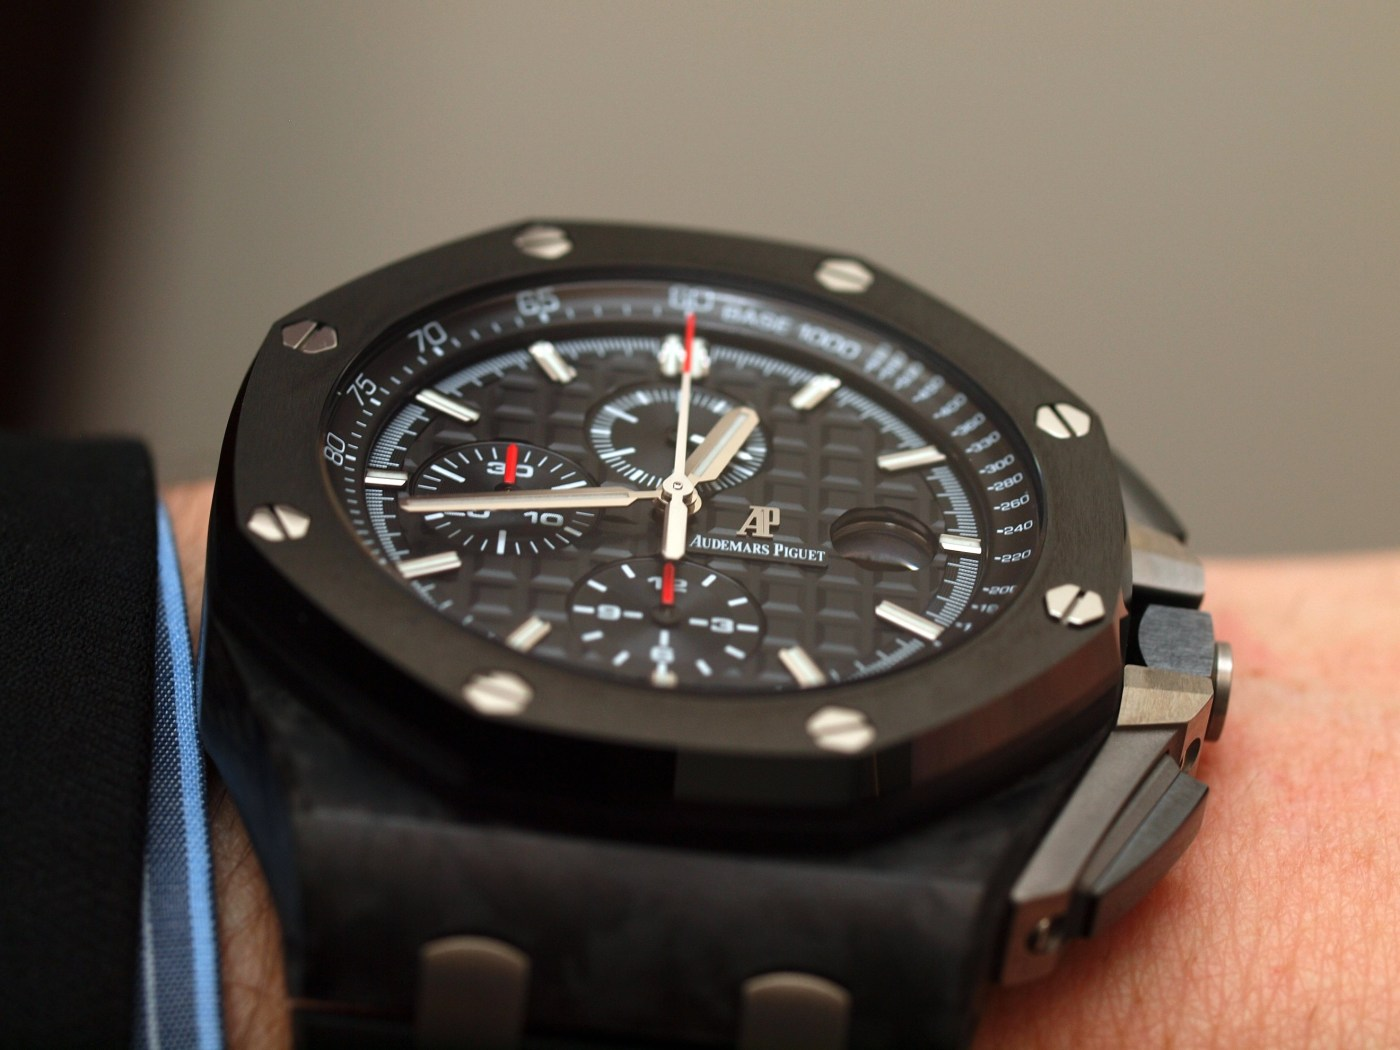 Audemars Piguet Royal Oak Offshore Chronograph Forged Carbon